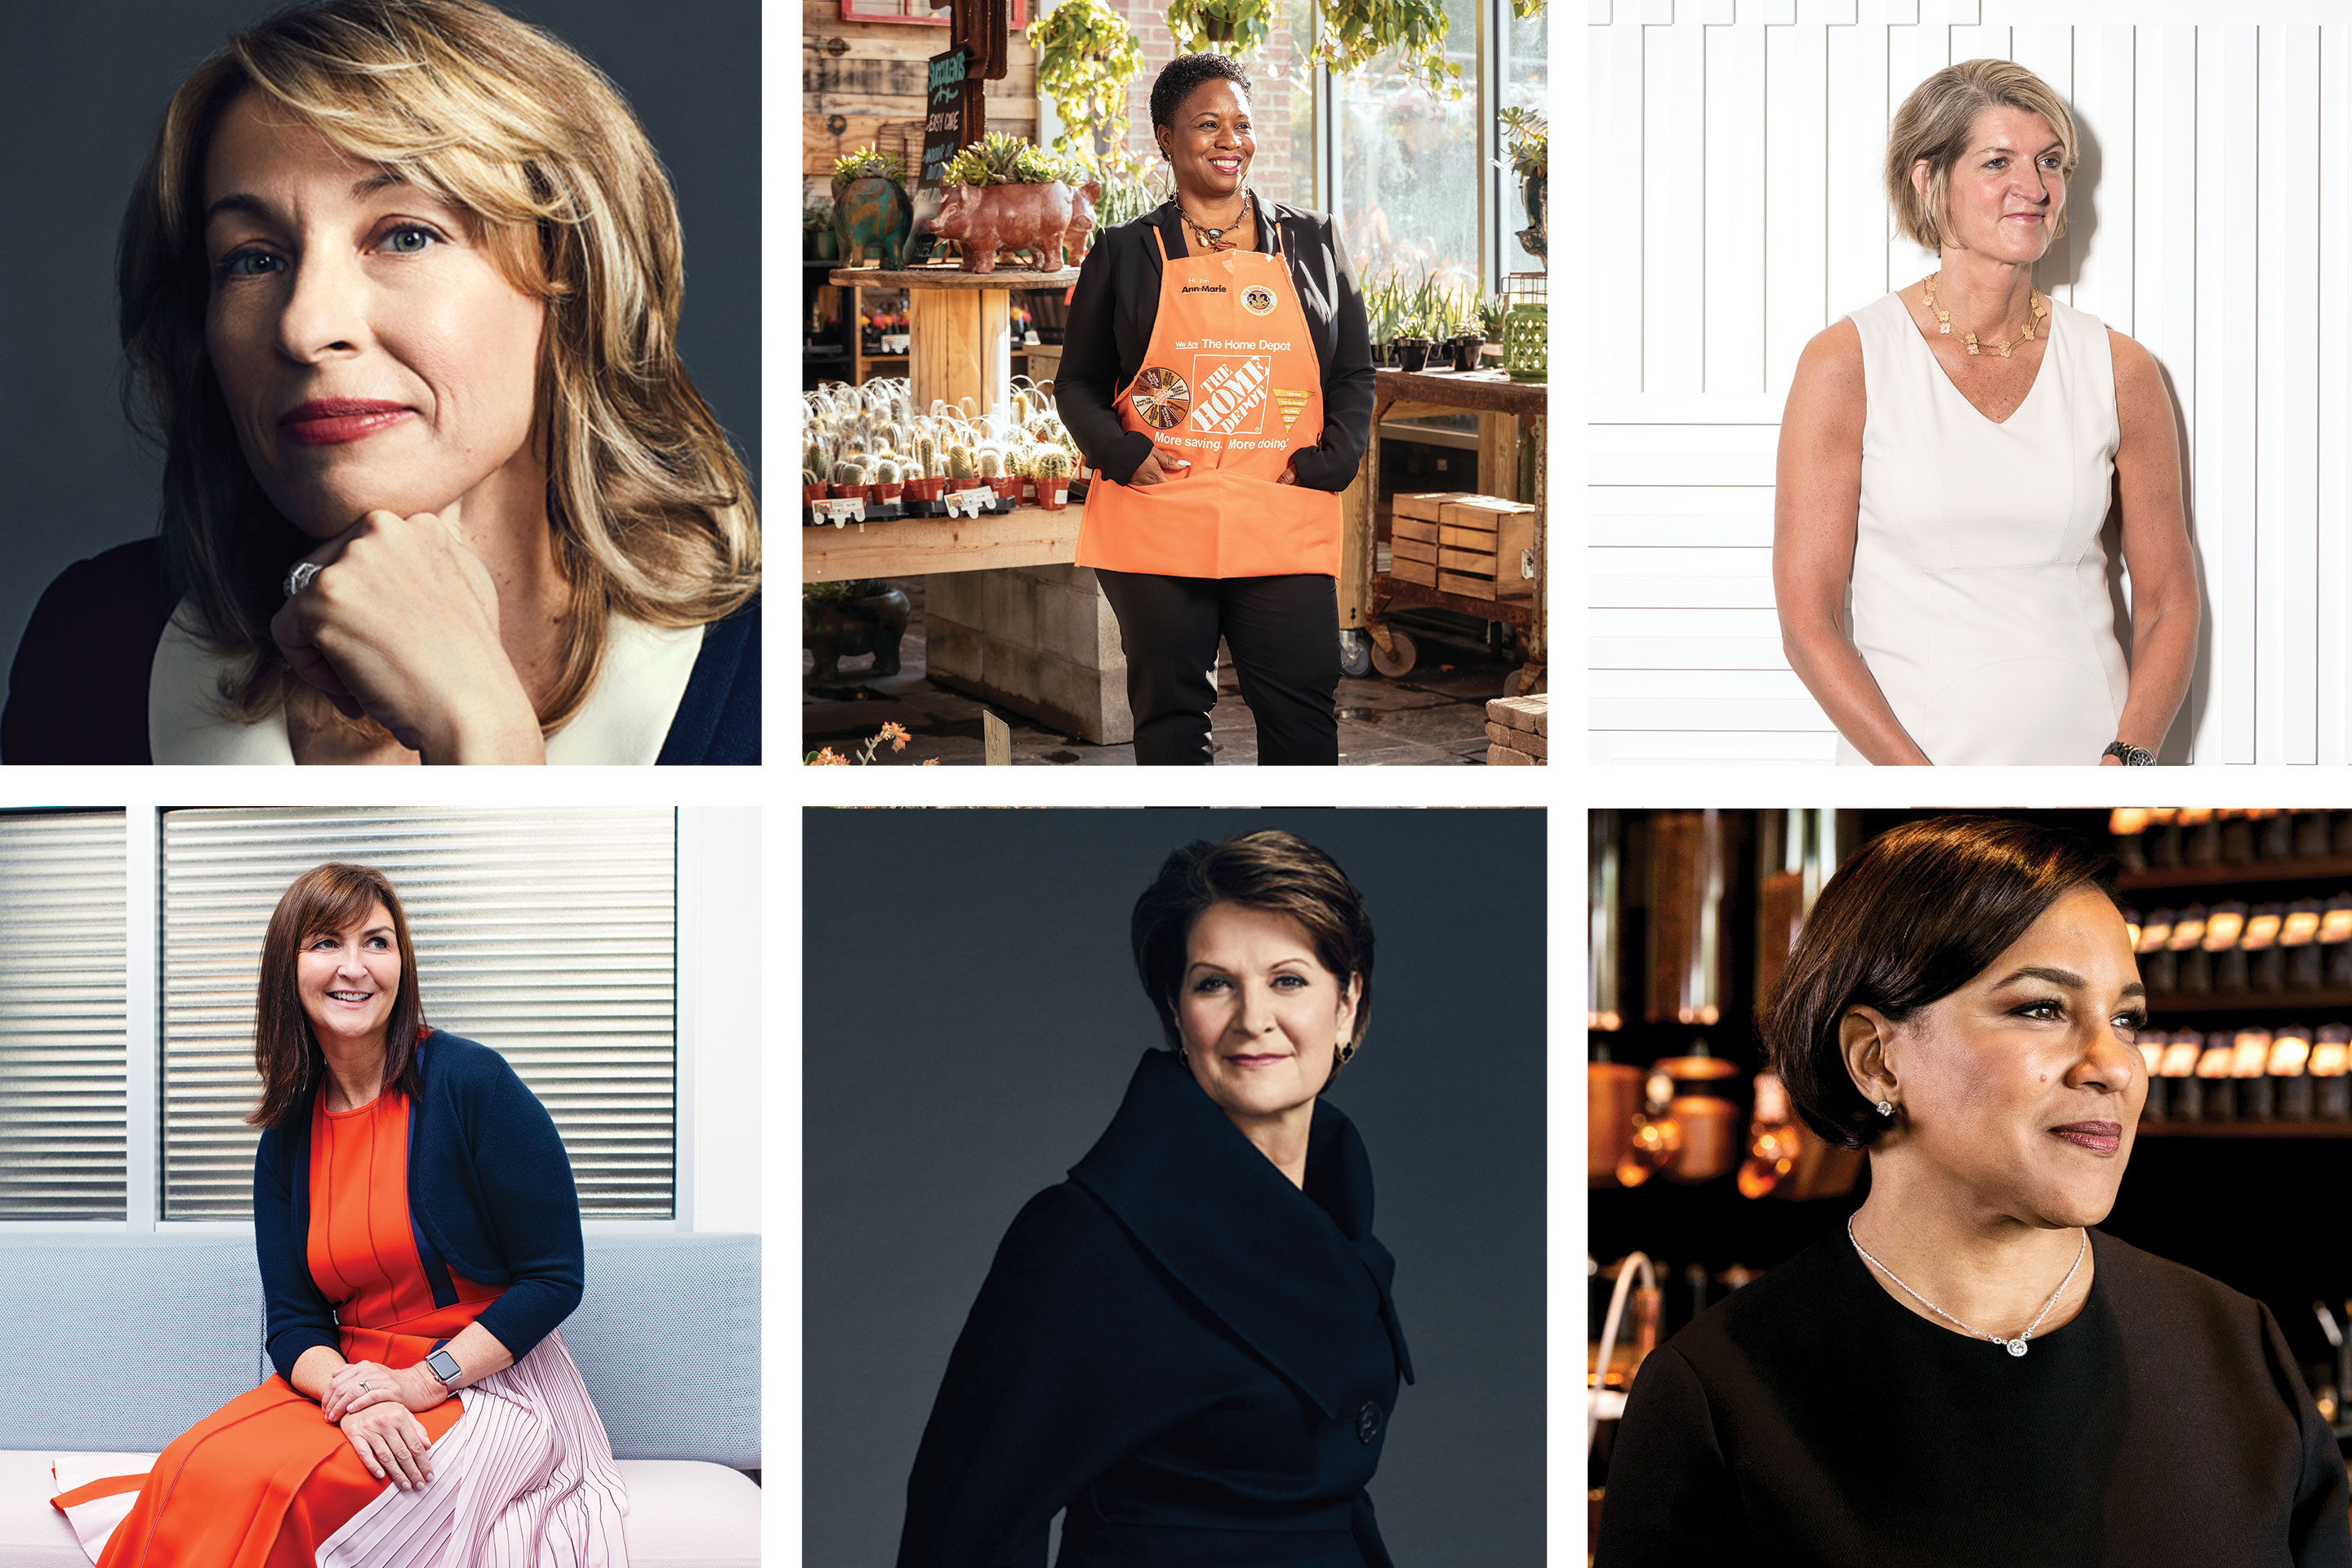 A few of the Most Powerful Women photographed by women photographers.